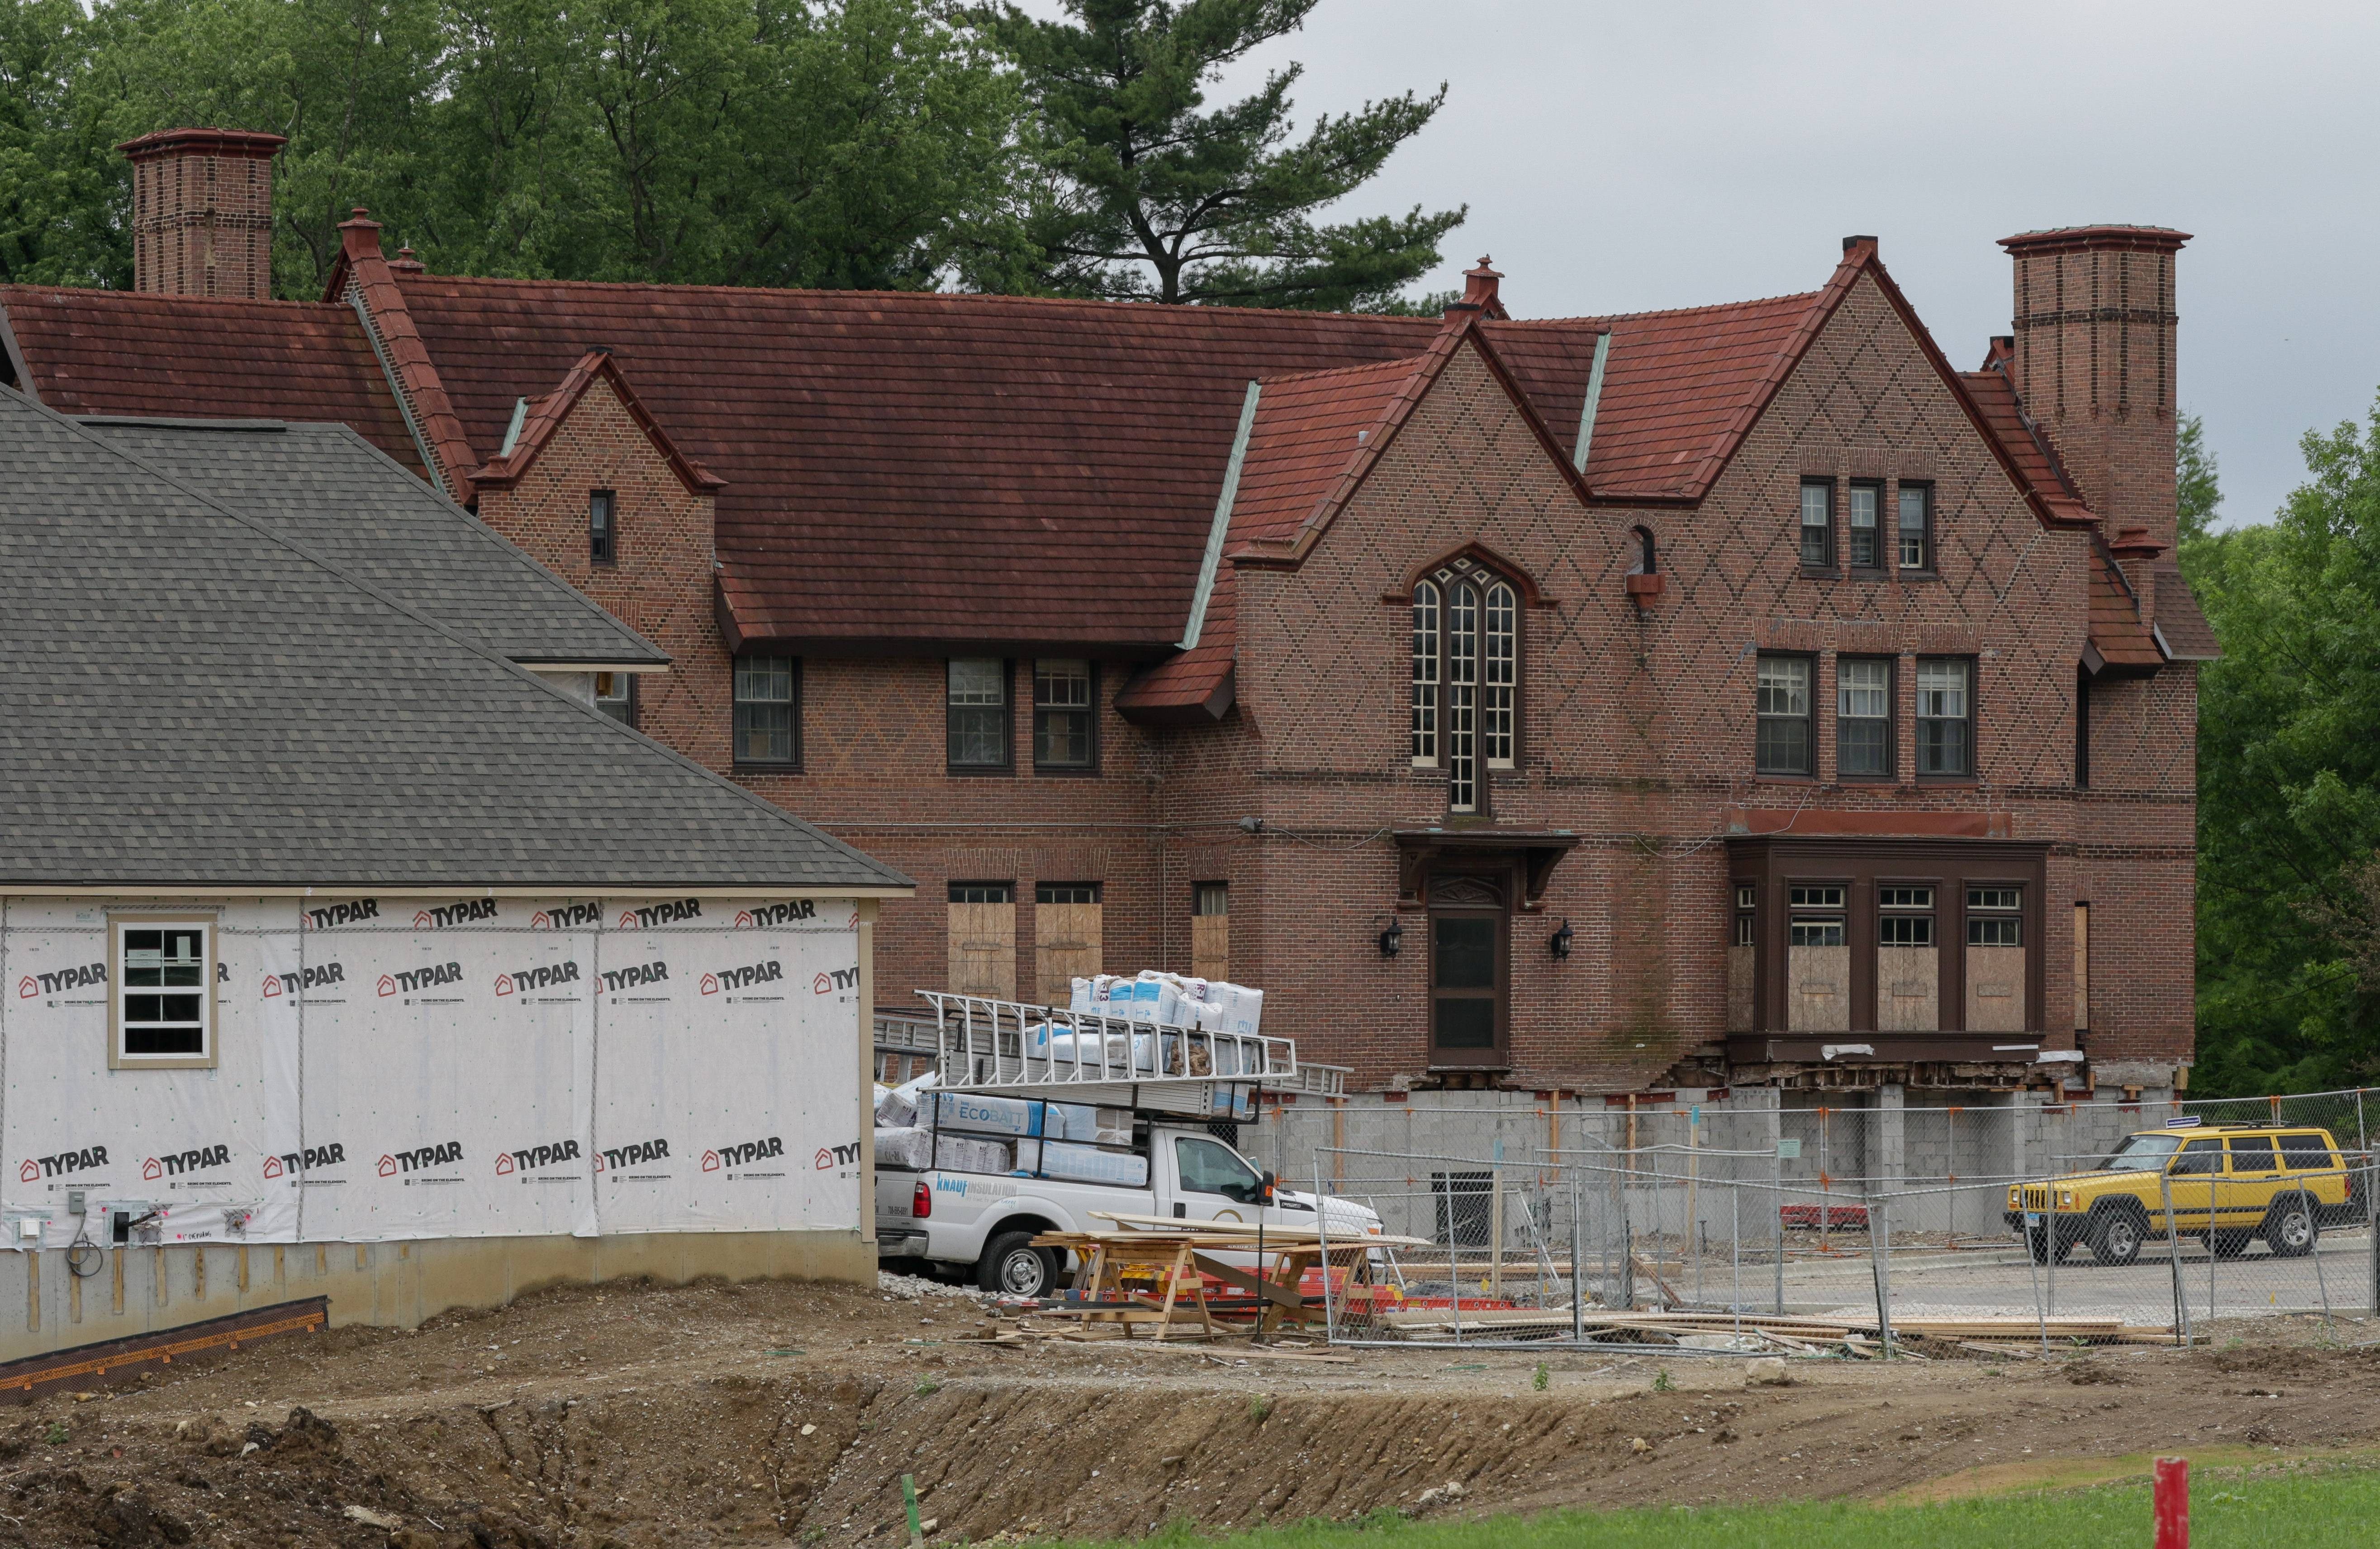 Bev Horne/bhorne@dailyherald.comConstruction continues around the foundation of the House of Seven Gables, a 19th-century mansion that was spared from demolition on the old Loretto Convent property in Wheaton.